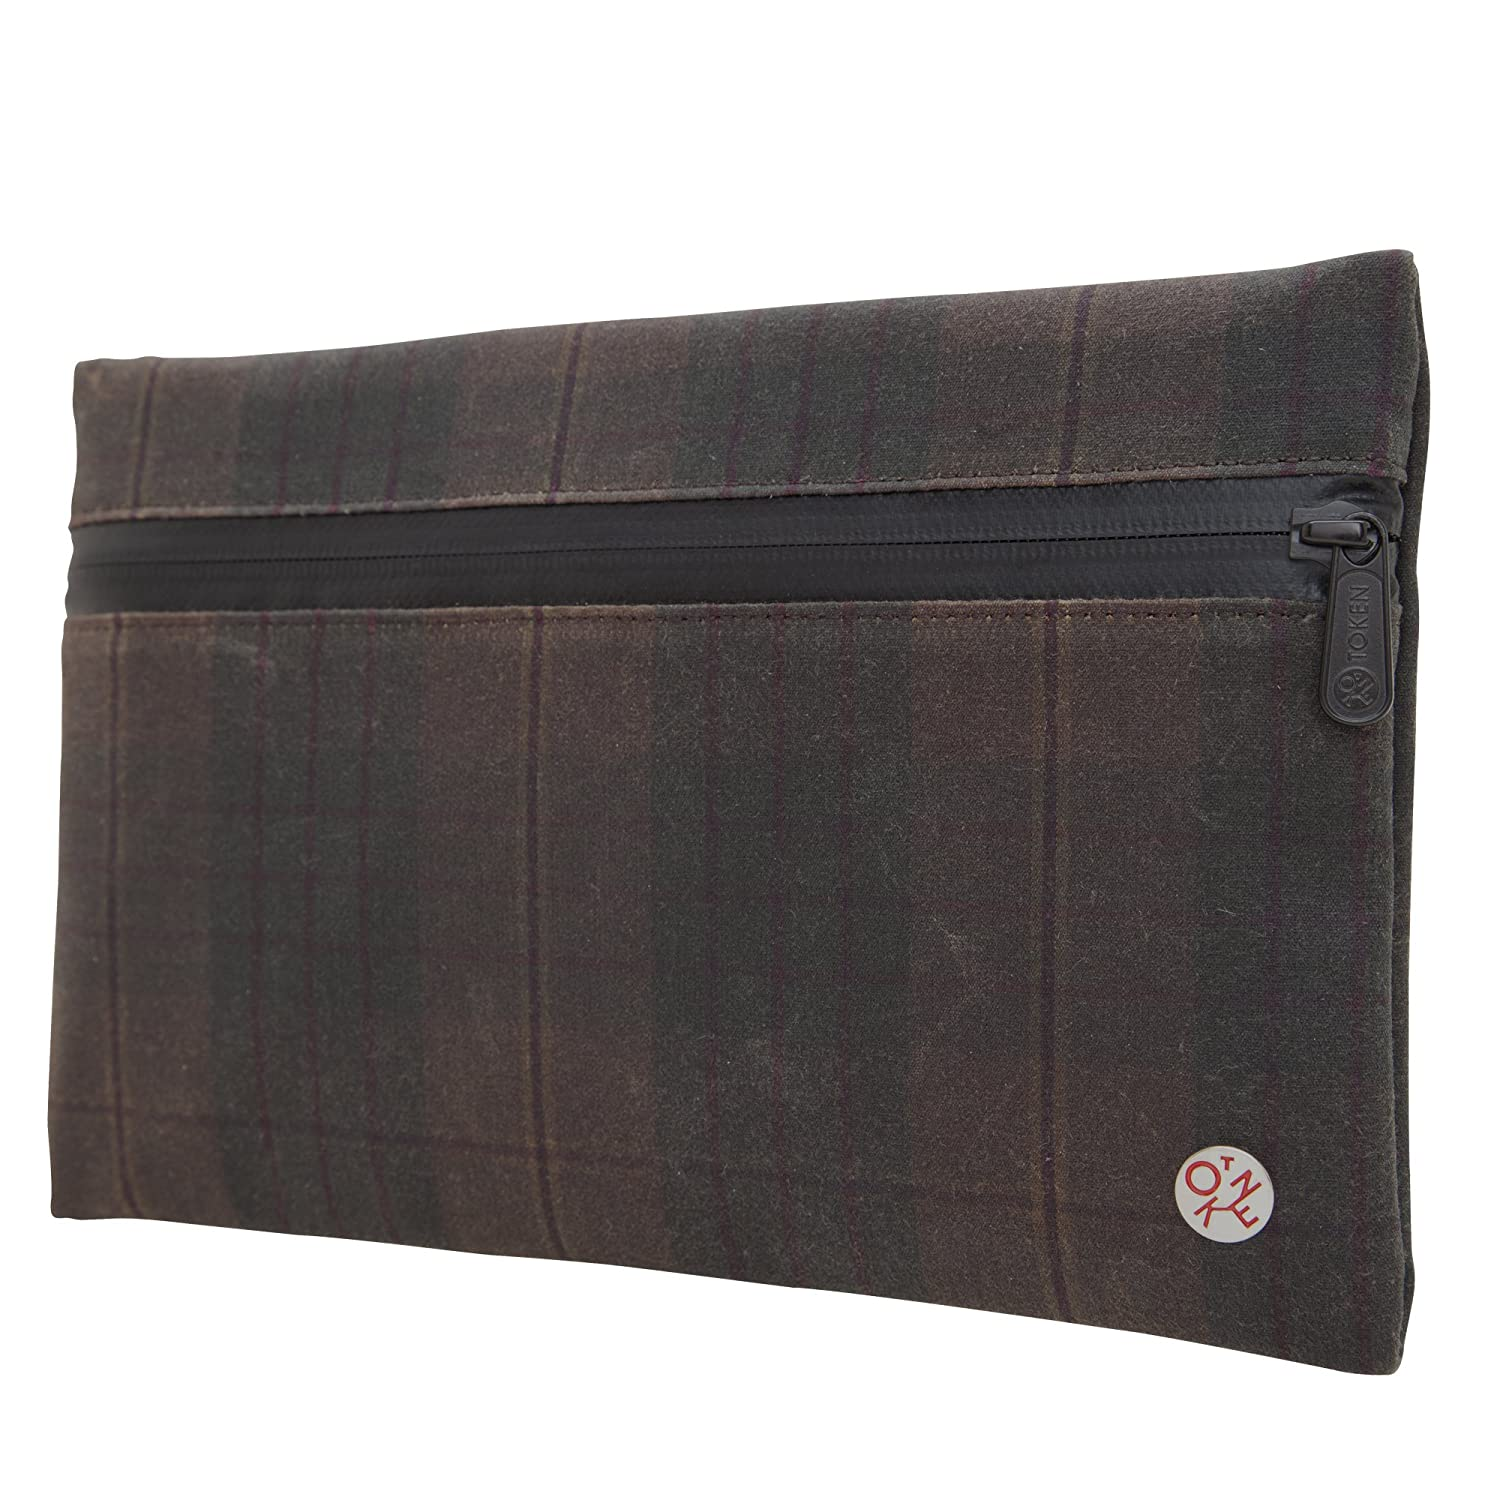 Black Token Bags Grand Central Wax Travel Kit One Size